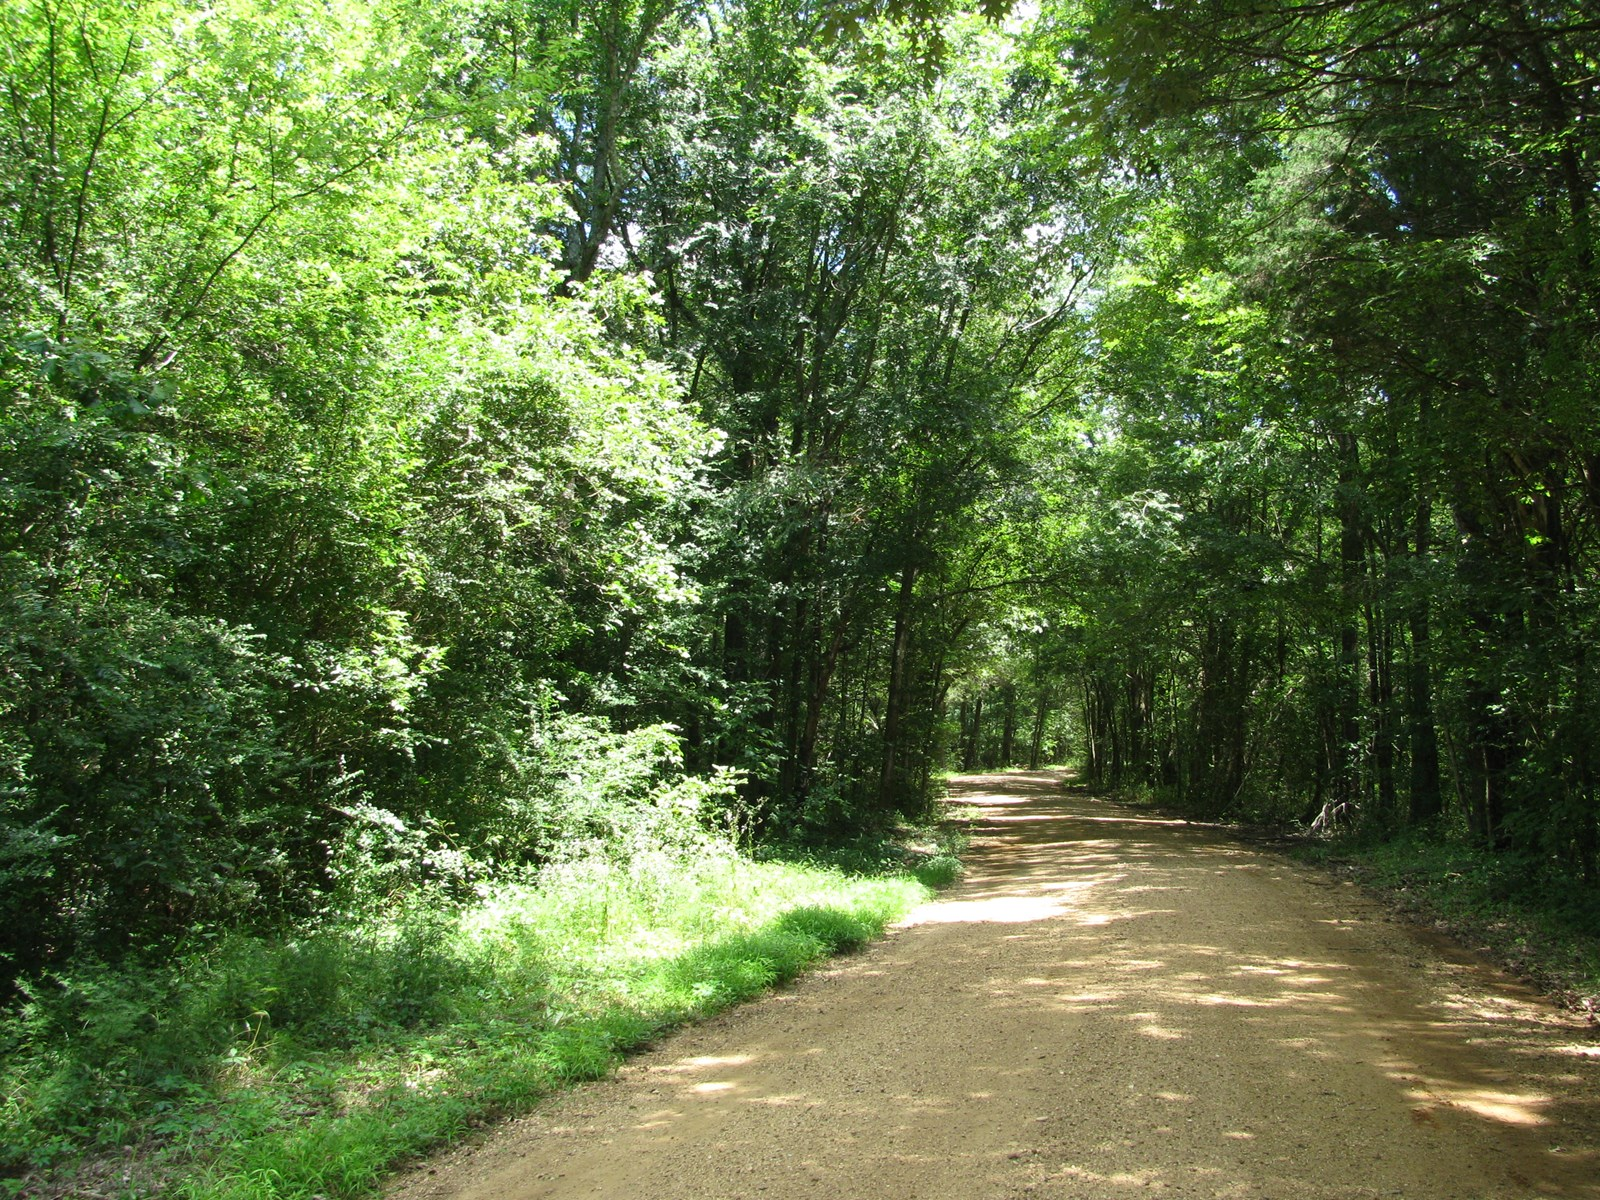 17 ACRES OF LAND FOR SALE IN TN, BUILDING SITES, CREEK